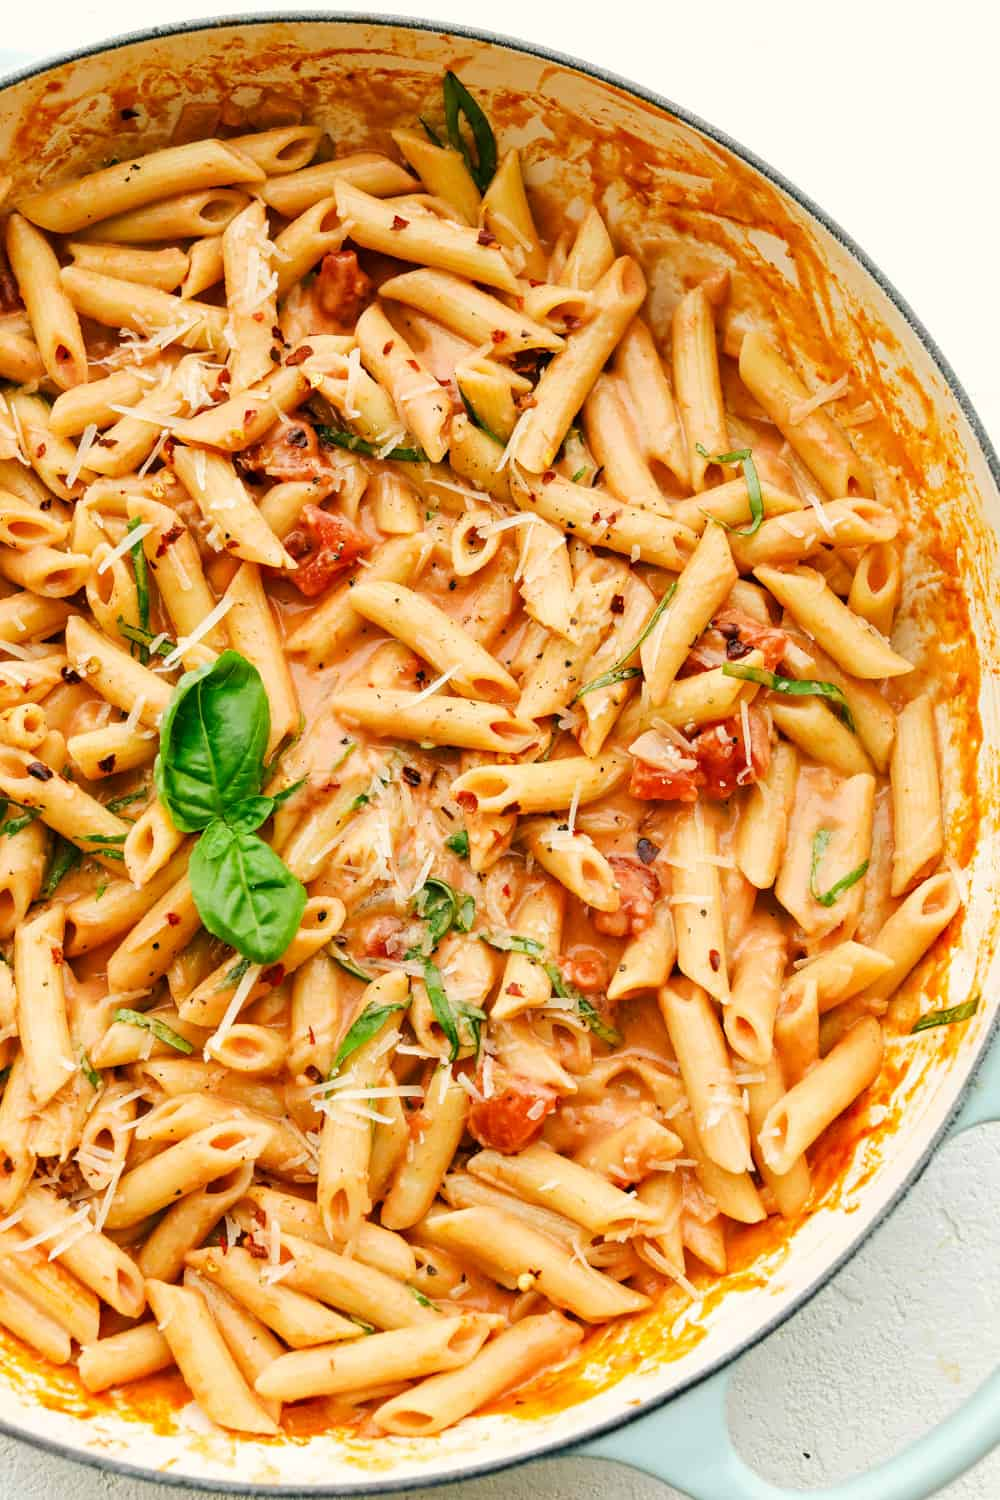 Creamy Penne Alla Vodka in a pot, with basil.